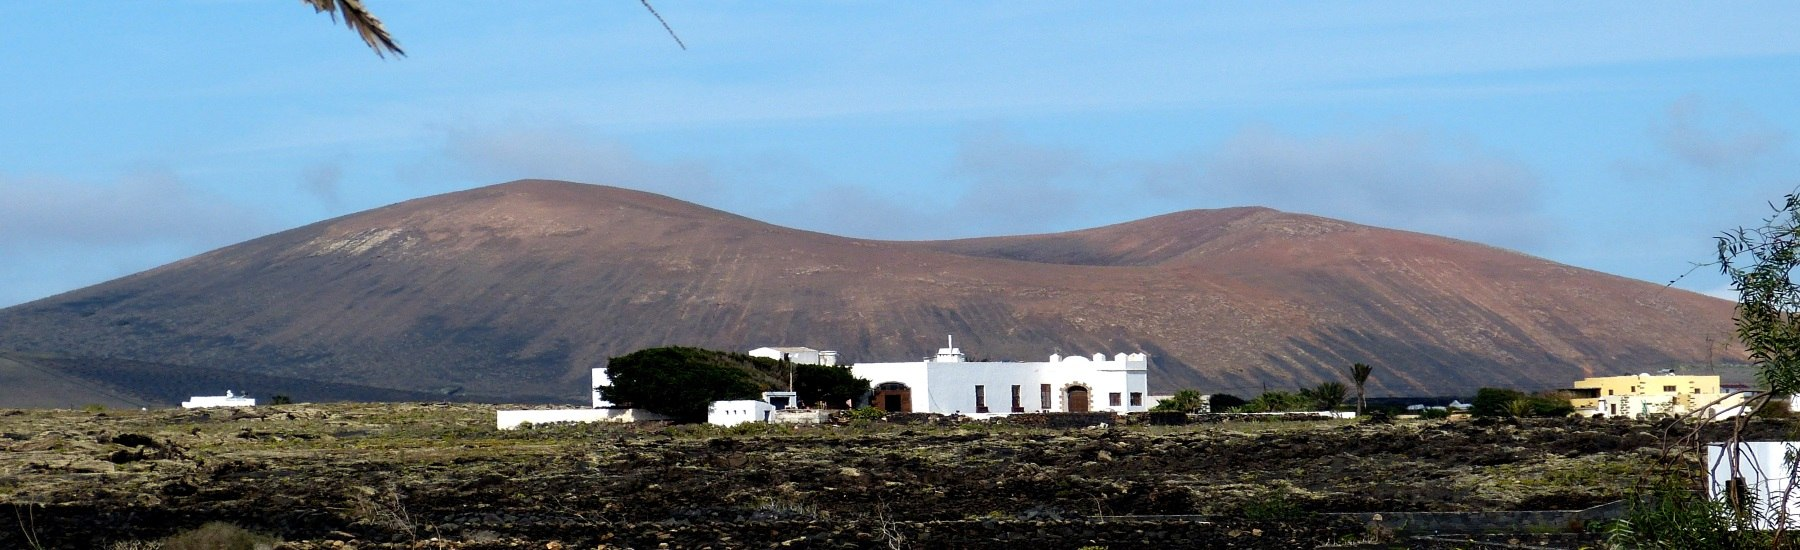 The best holiday excursions in Lanzarote - beaches